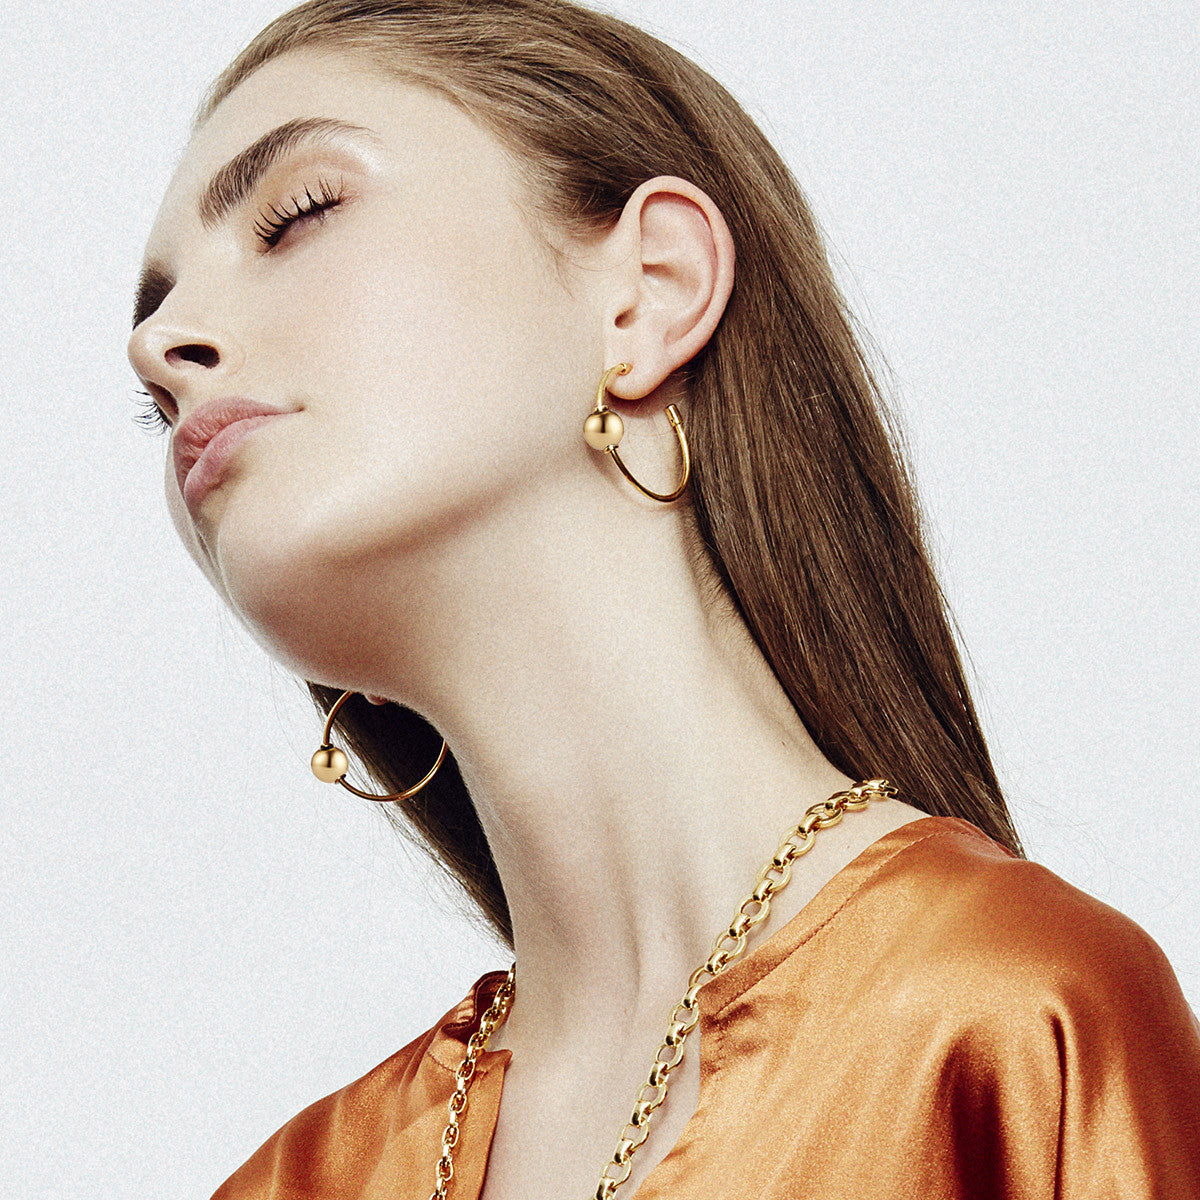 Sarina Suriano Mars Circulus hoop earrings in 18K gold plating from the Sphera collection